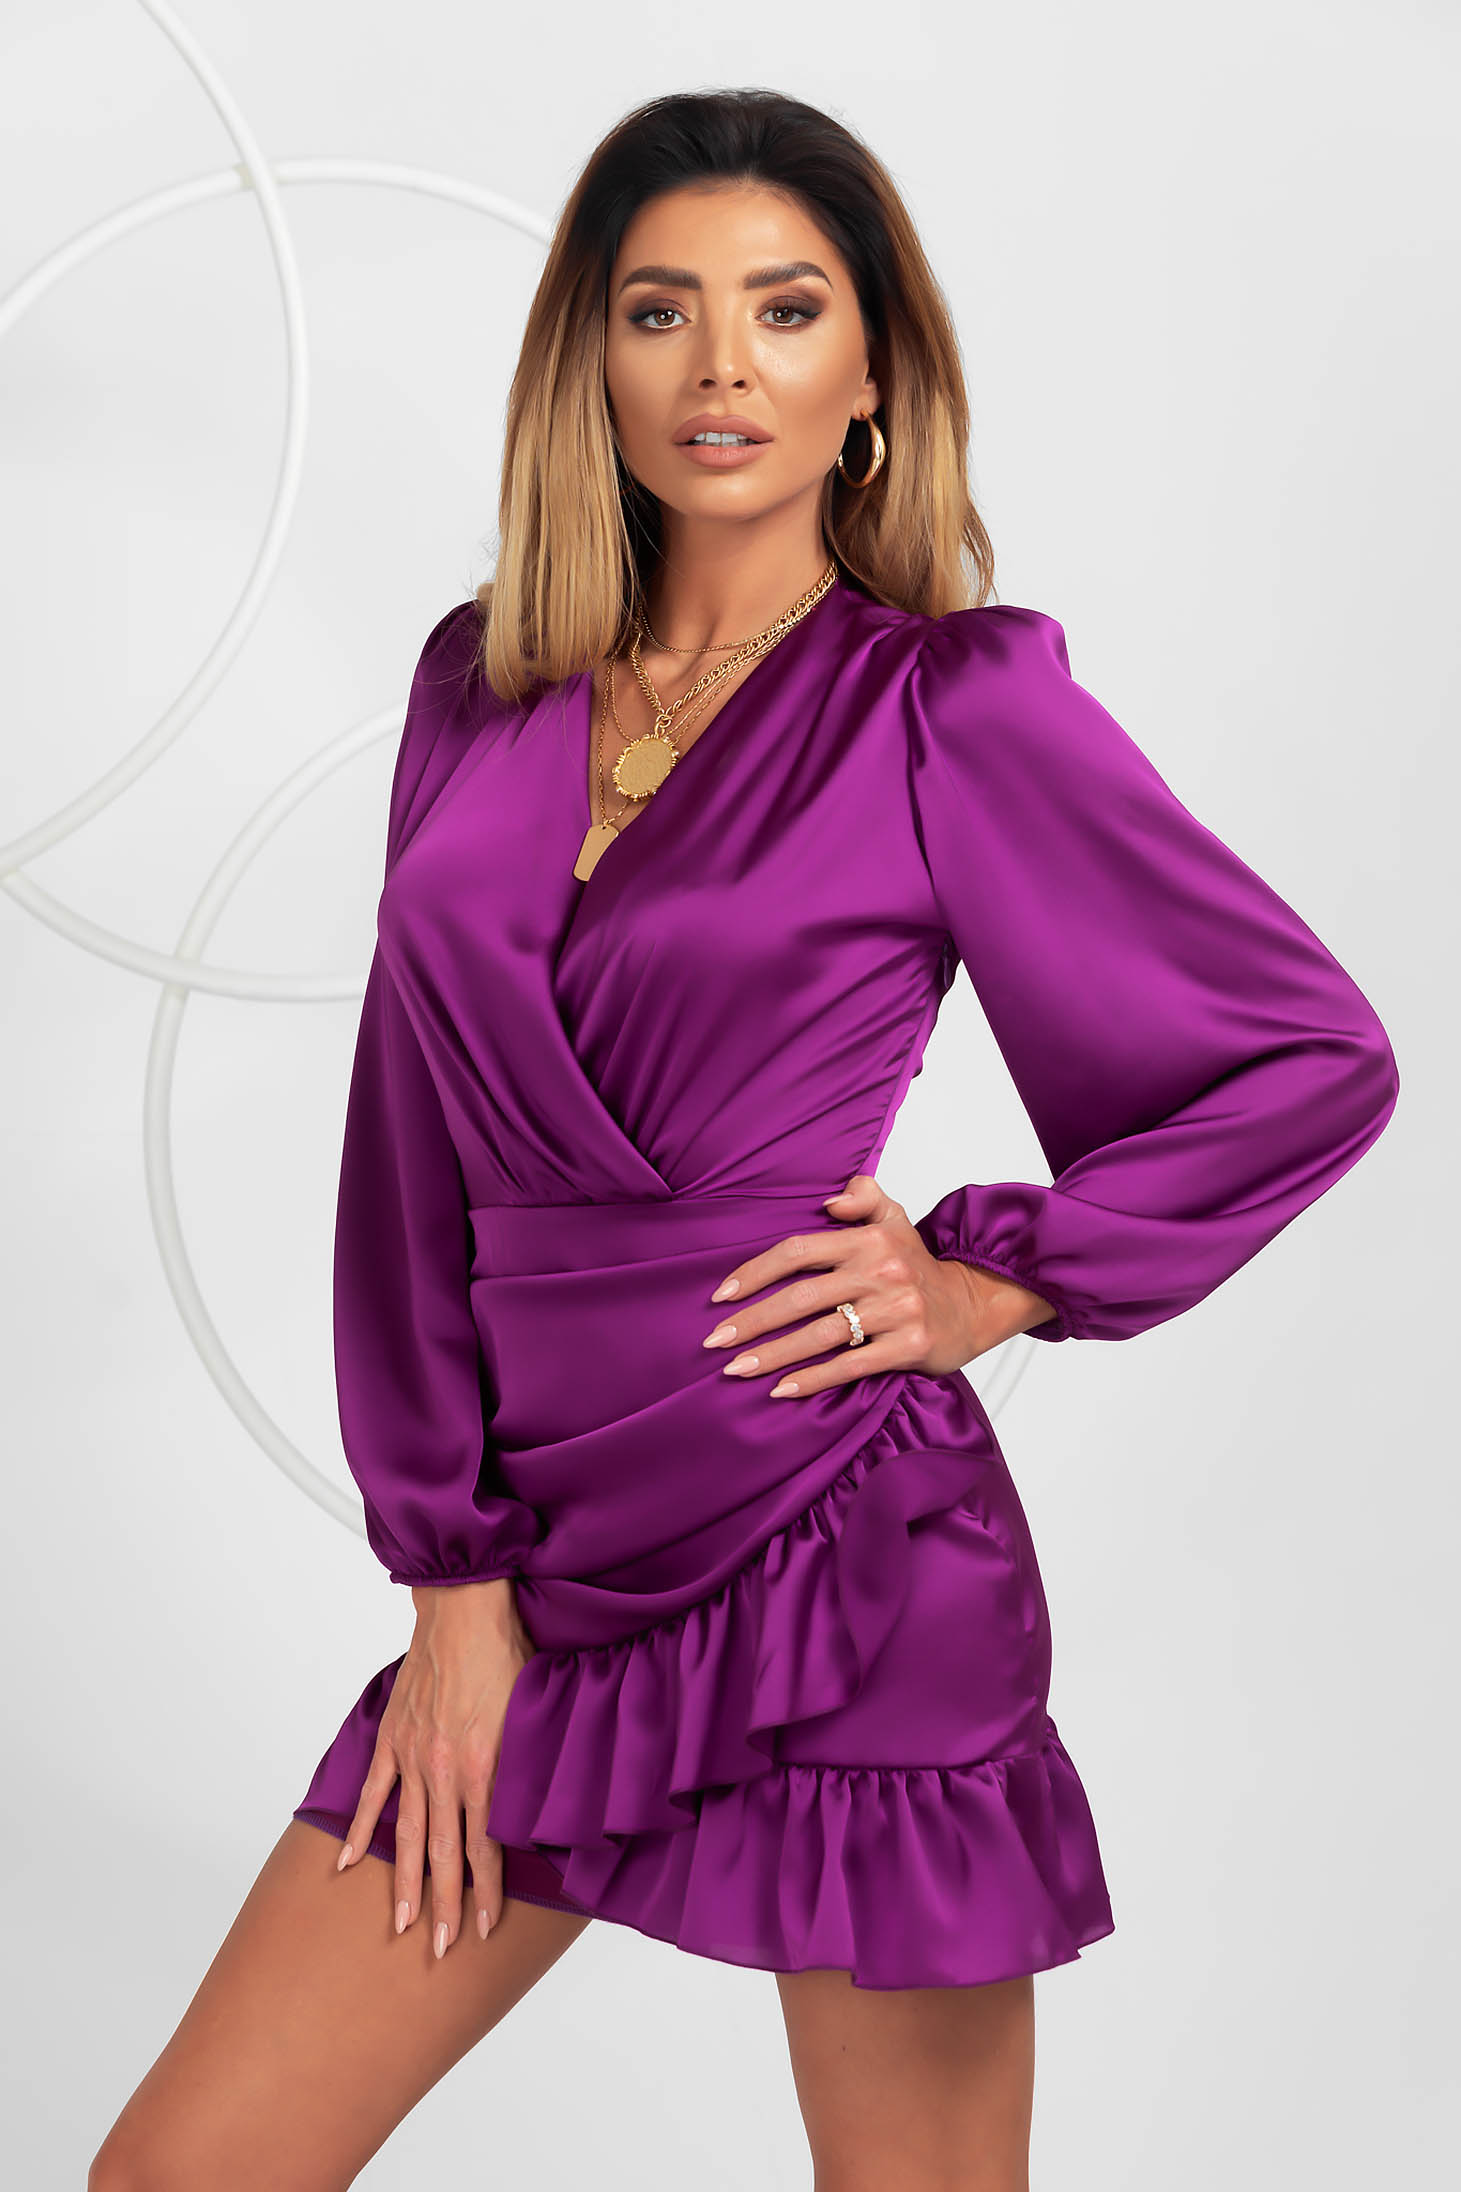 Purple dress from satin wrap over front with ruffle details short cut occasional